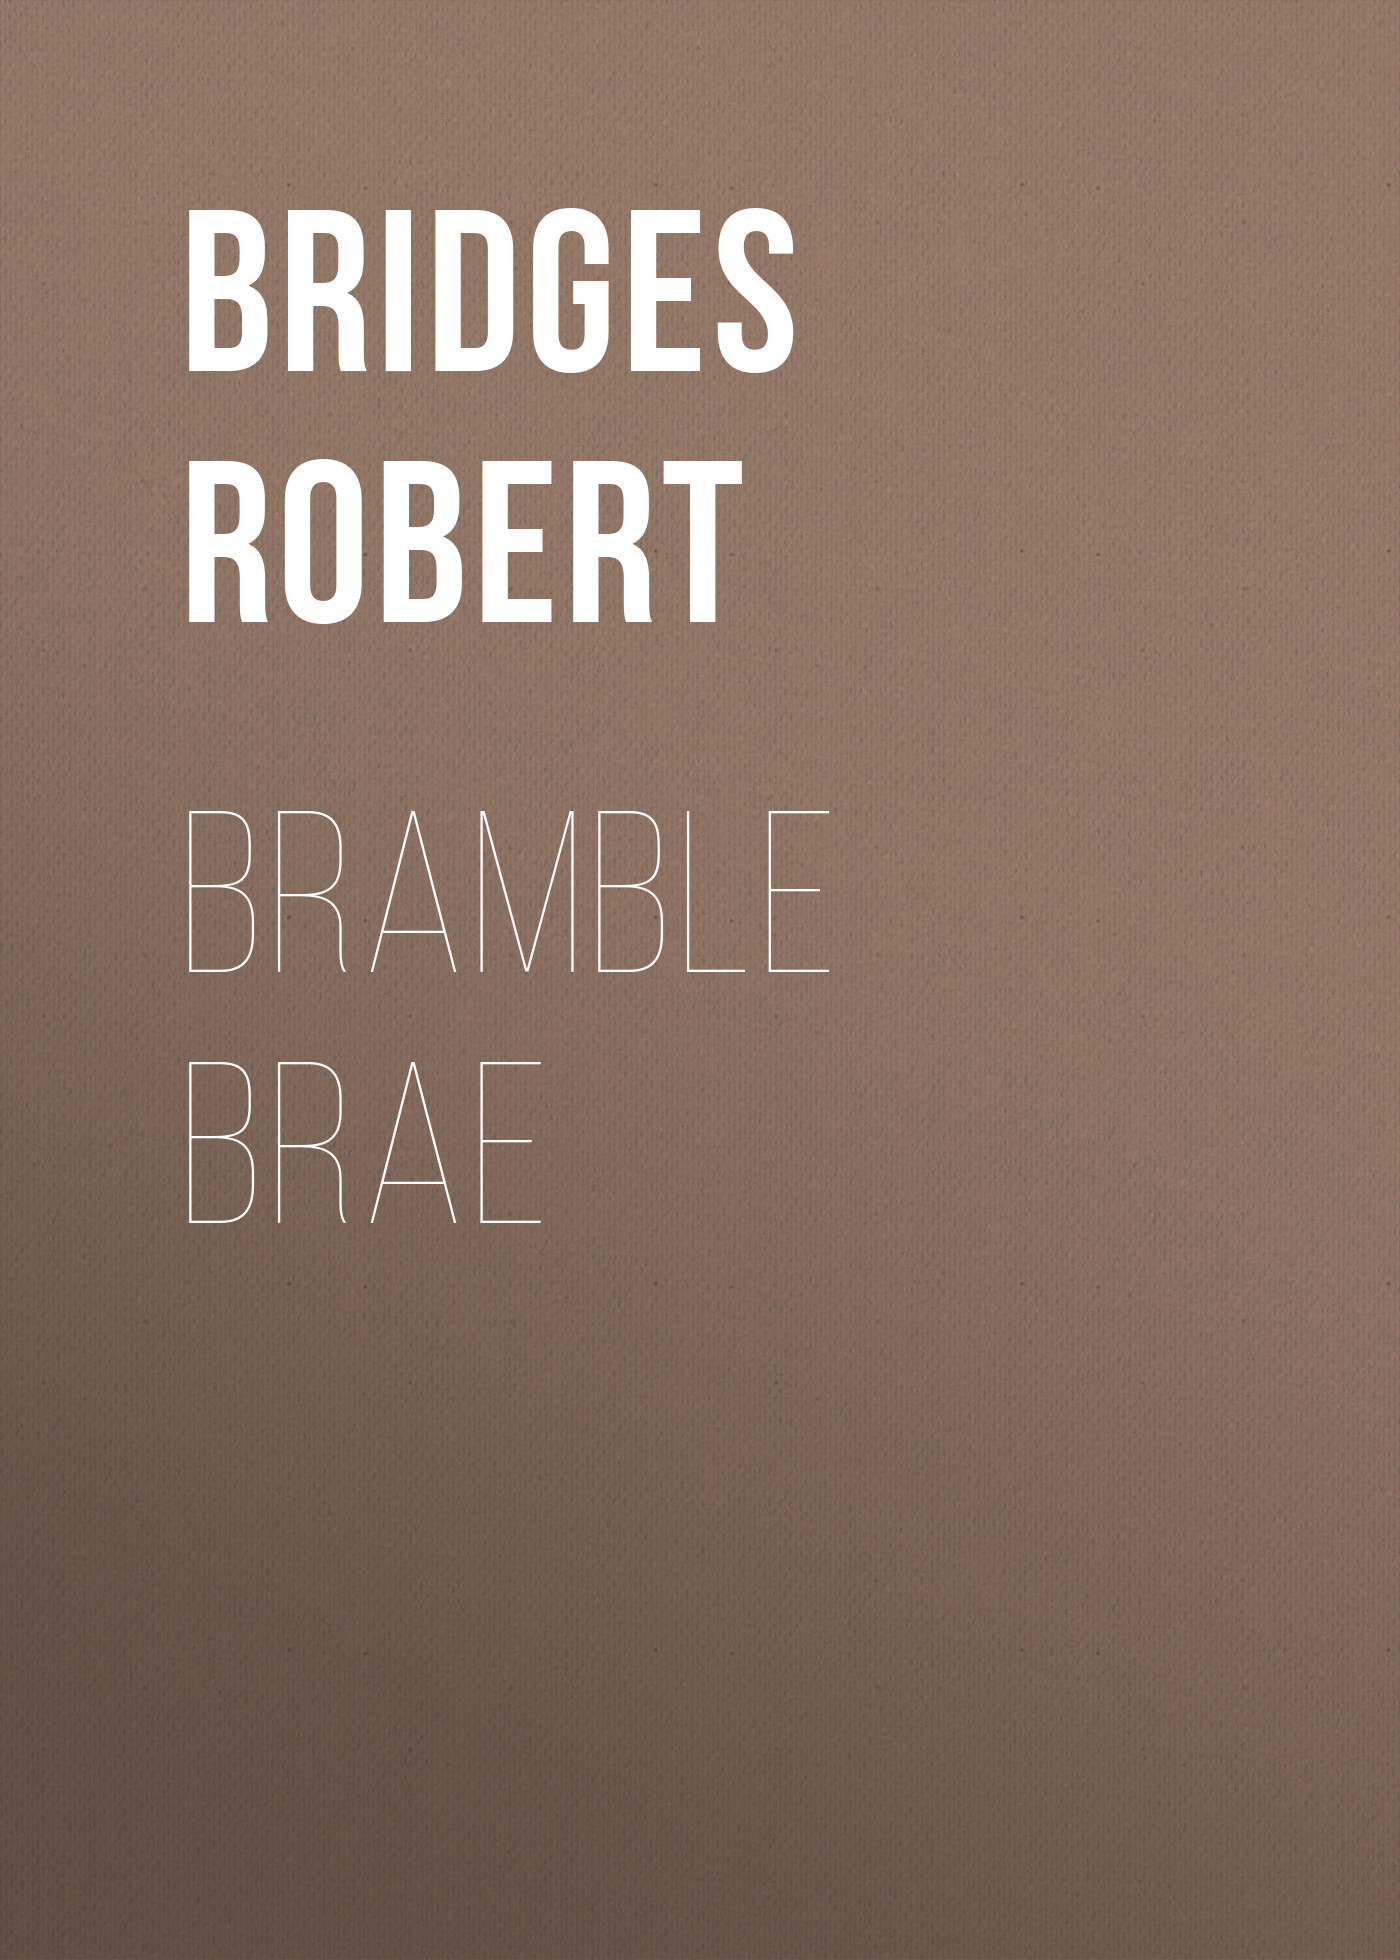 Bridges Robert Bramble Brae bridges robert on english homophones